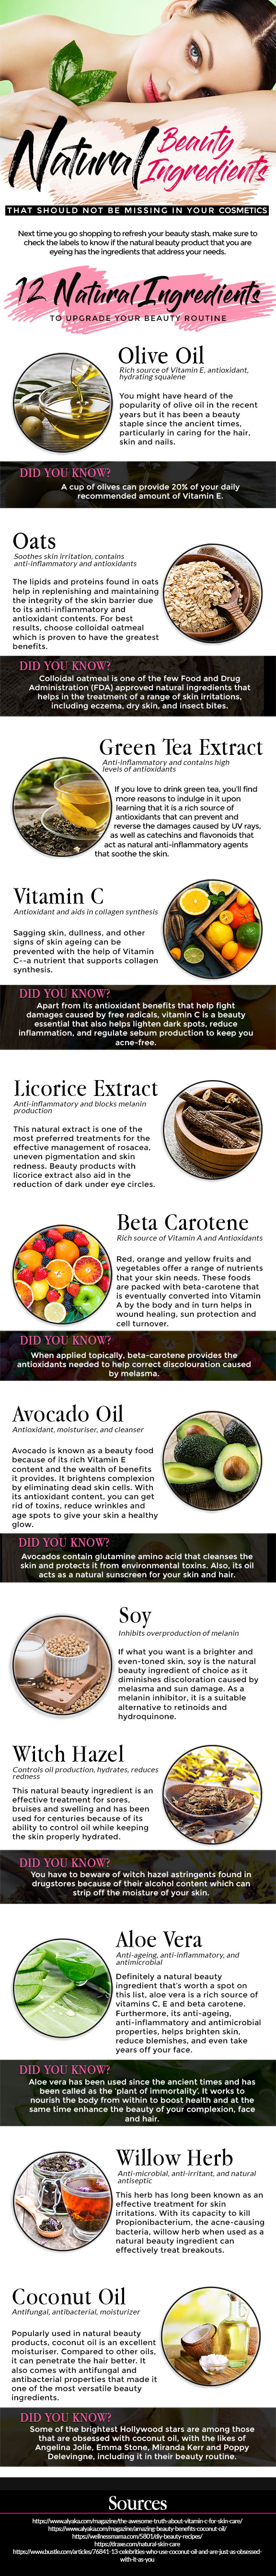 Natural Beauty Ingredients for Your Cosmetics